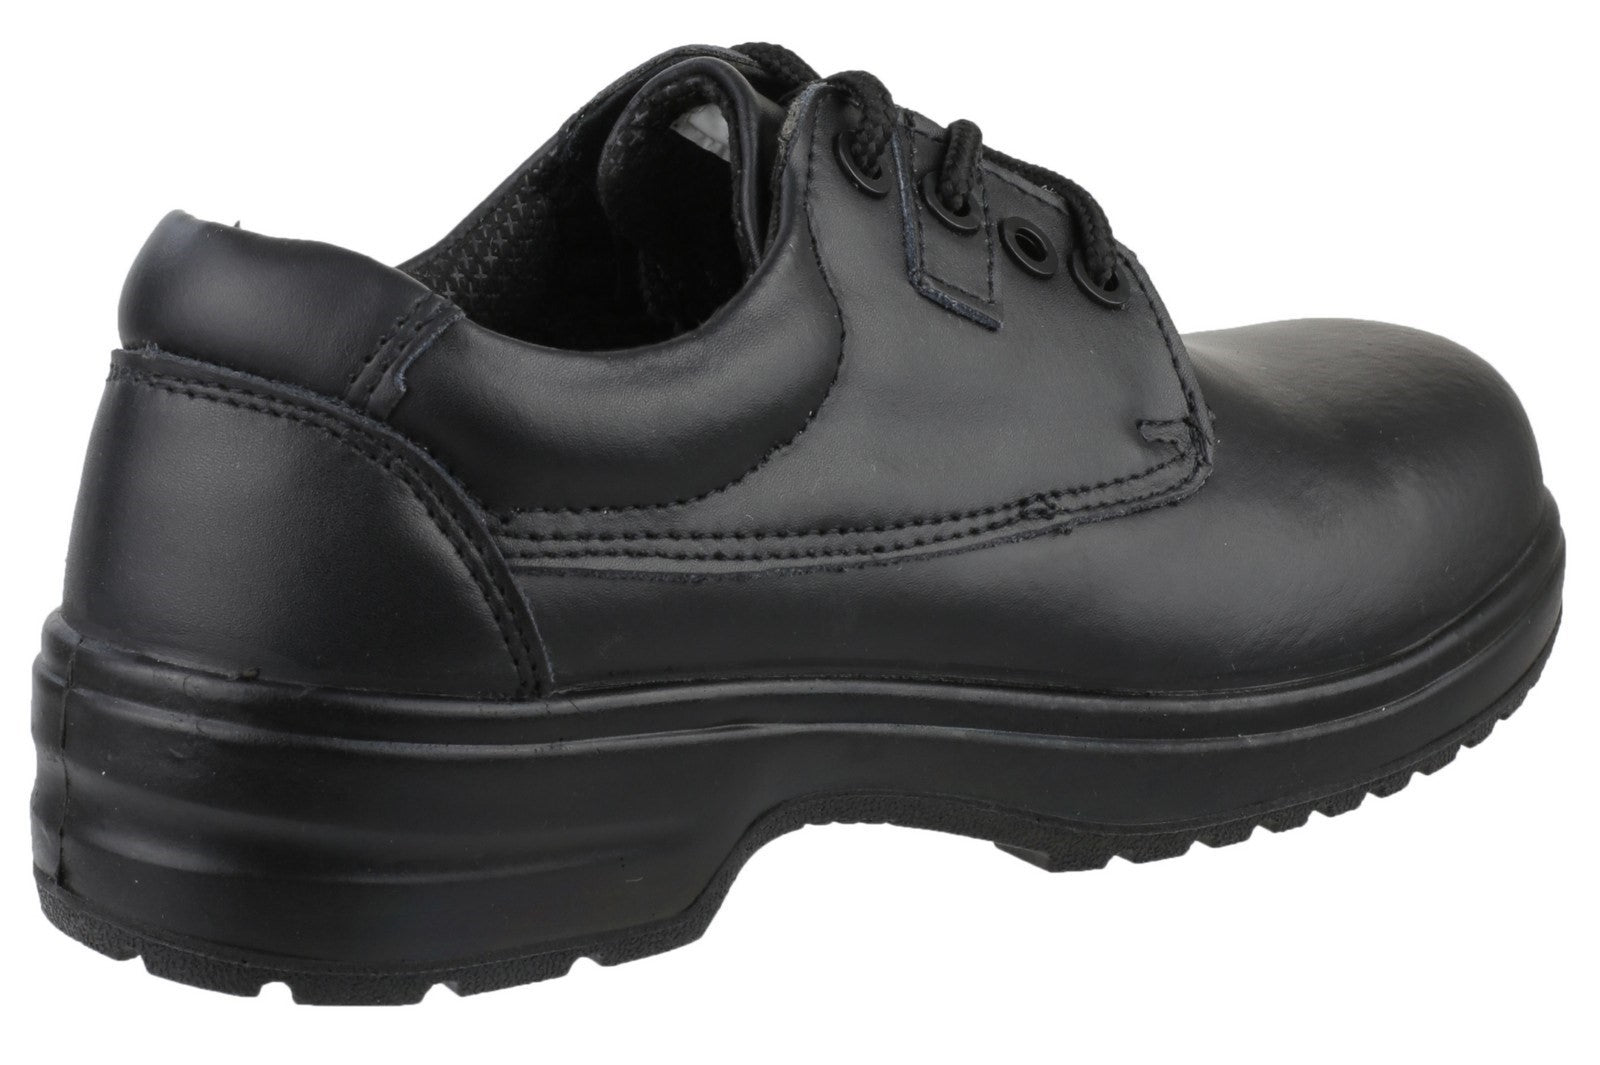 FS121C Metal Free Lace up Safety Shoe